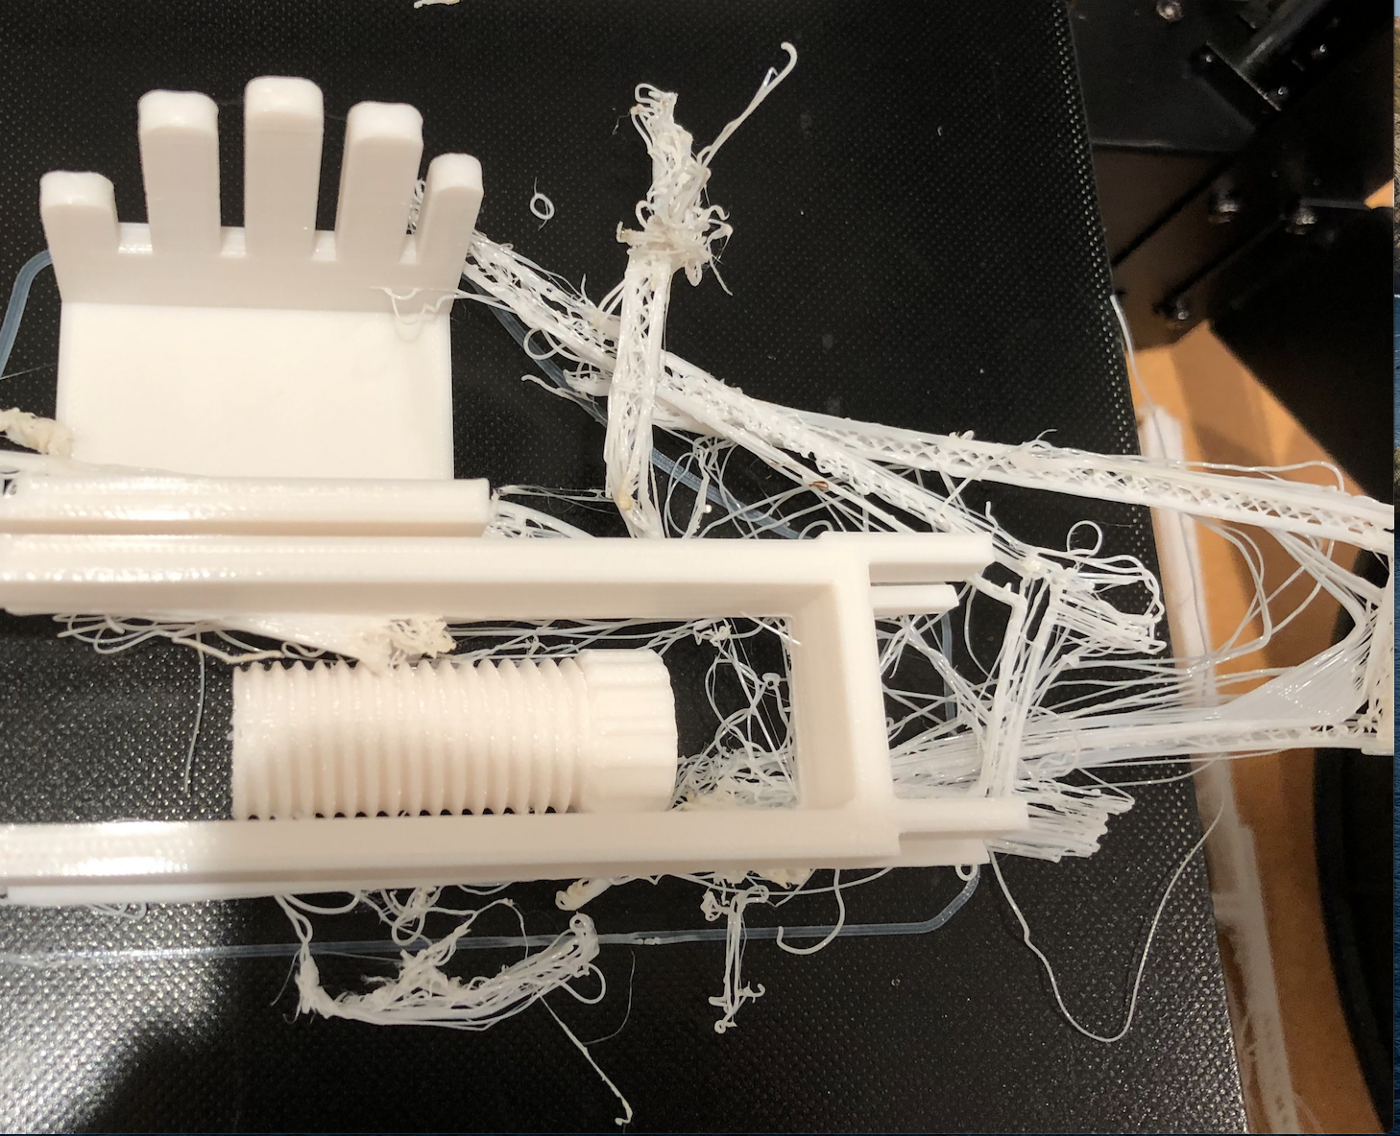 3D Printing has been getting easier every year, but it is still not as easy as 2D printing.